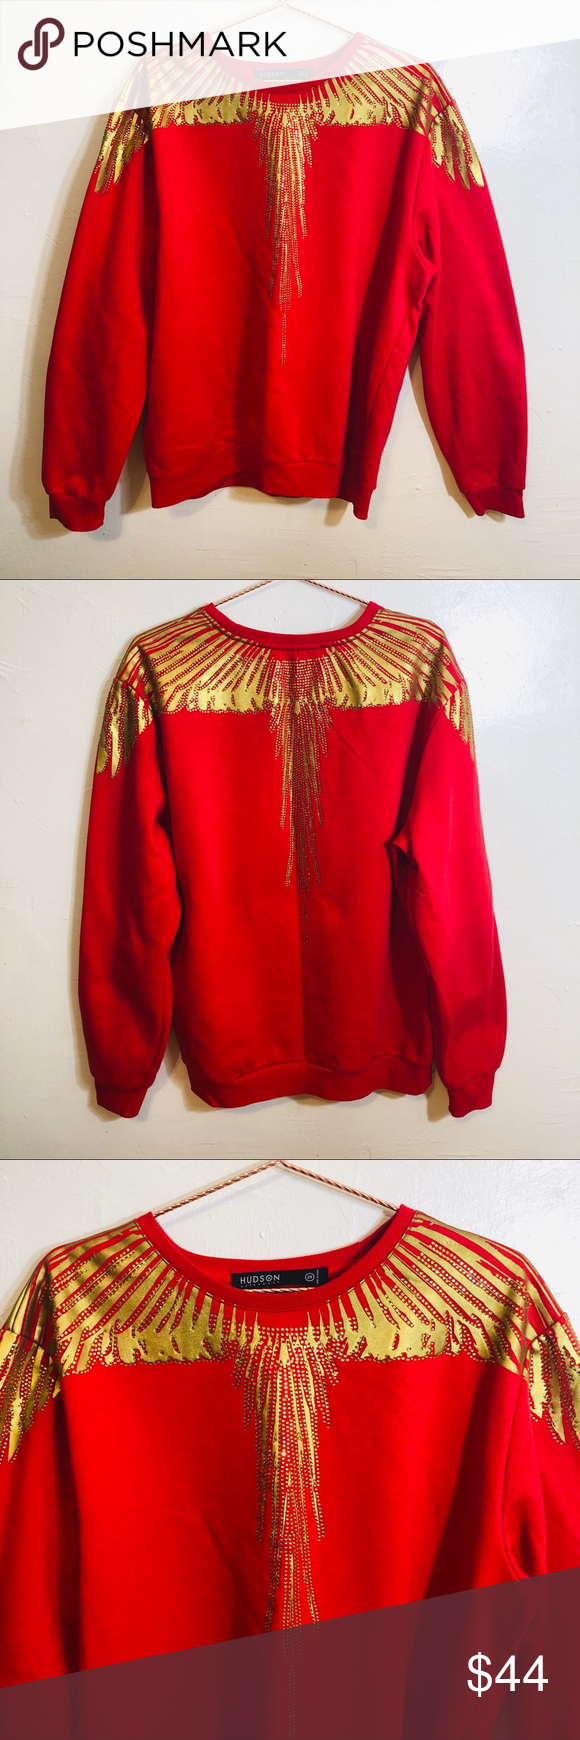 """Hudson Outerwear Red Gold Foil long Sweatshirt Men Hudson Red Gold Bling long Sleeve Sweater  Great Condition  Fabric: See Pictures for Details  Below are flat lay approximate measurements in inches:  Armpit 26"""" Sleeve 27"""" Length 28""""  No swaps/Trades 🛑 Offers Welcome.  Please browse rest of my closet LIKE,SHARE, MAKE OFFERS, BUY!!  I share other Posh Closets Daily  💯 👍🏼❤️  Please check out the rest of my closet.     Thanks for Poshing 😁 thru🥂  Item- Sweater Hudson Outerwear Sweaters"""